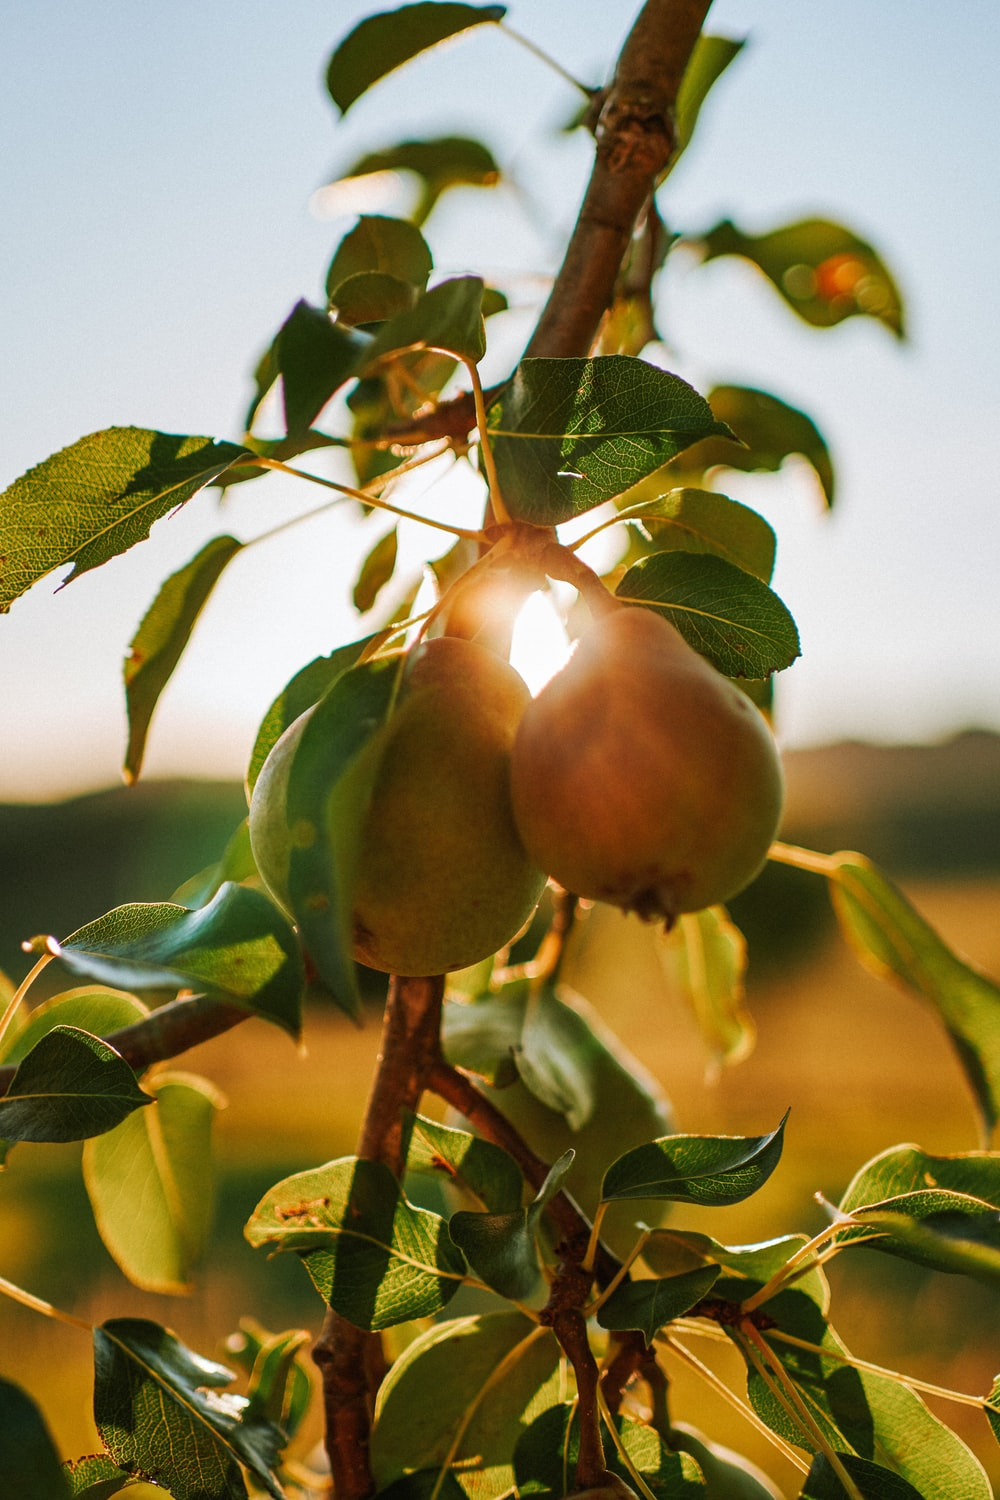 Pear Tree Pictures Download Free Images On Unsplash Wallpaper macro pear fruit branch leaves